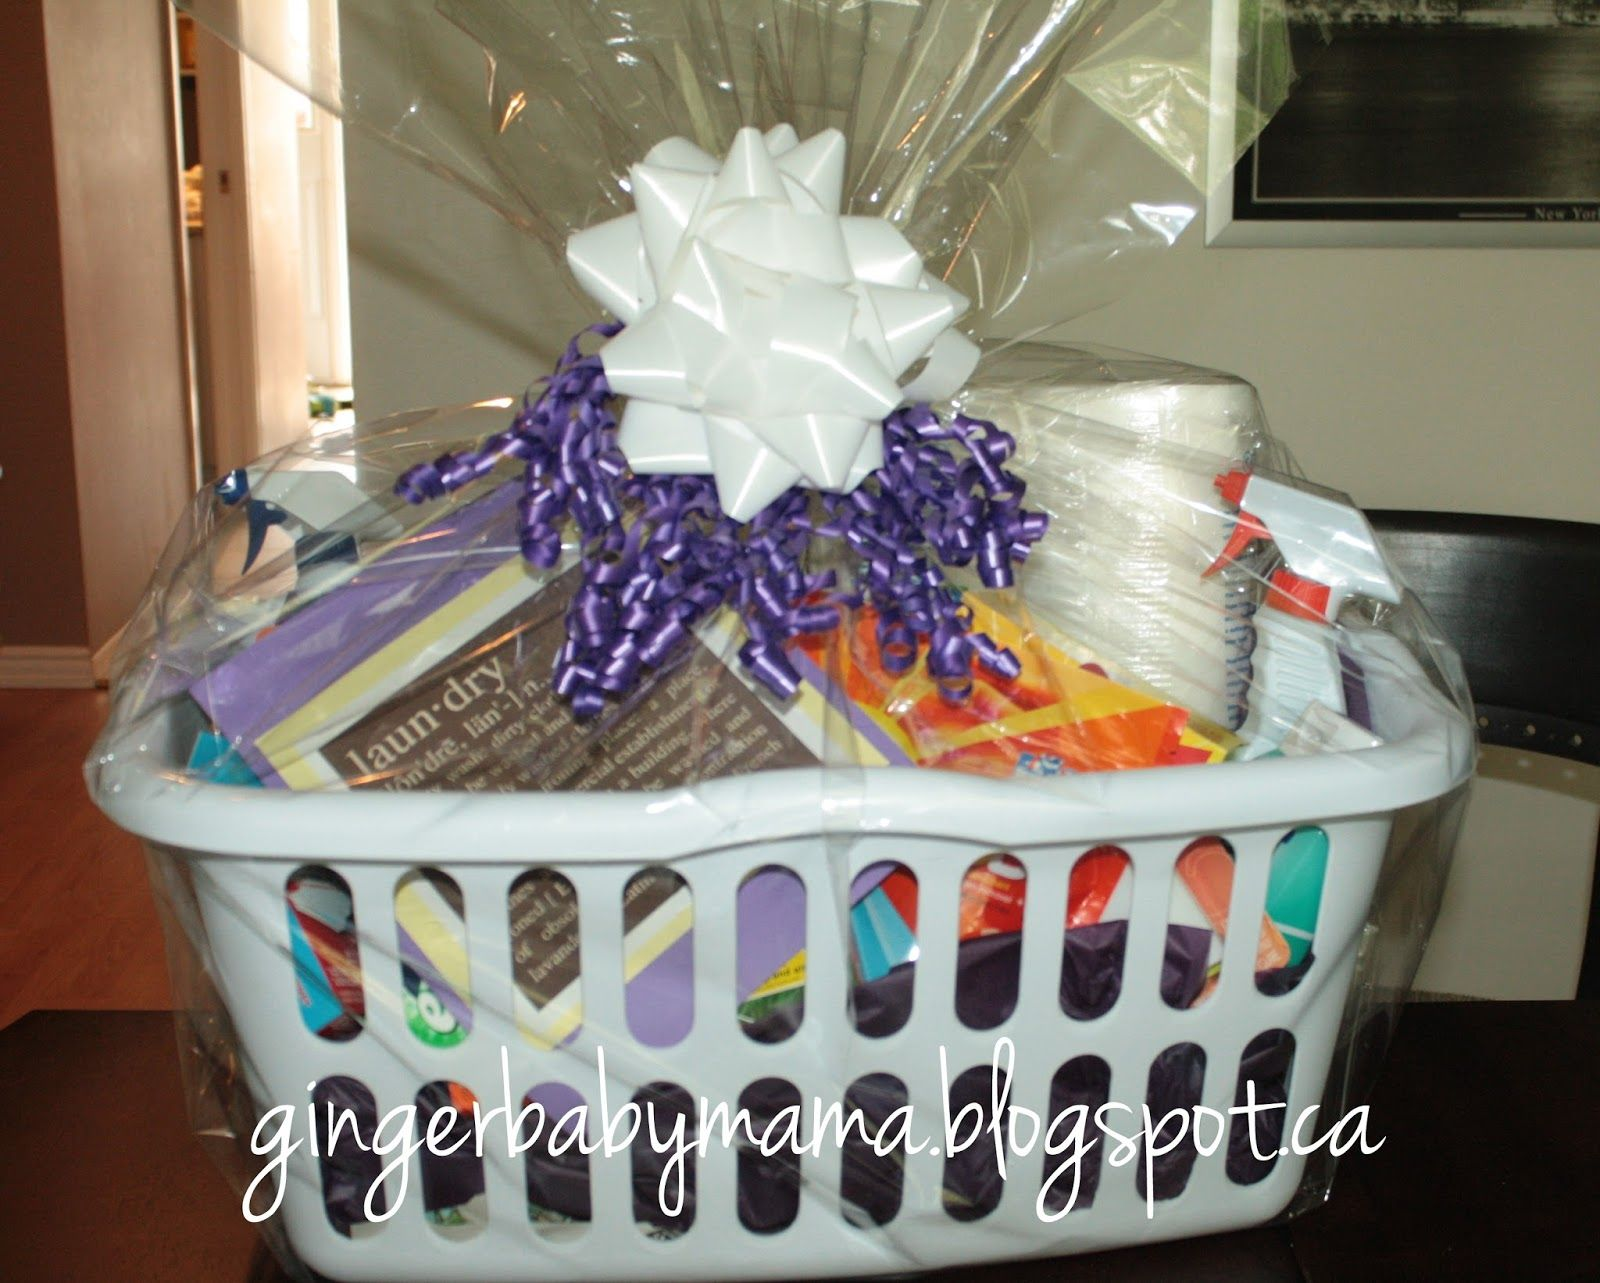 Diy Wedding Shower Gifts: Shower Gift Poem Here's A Cute Way To Add A Little More